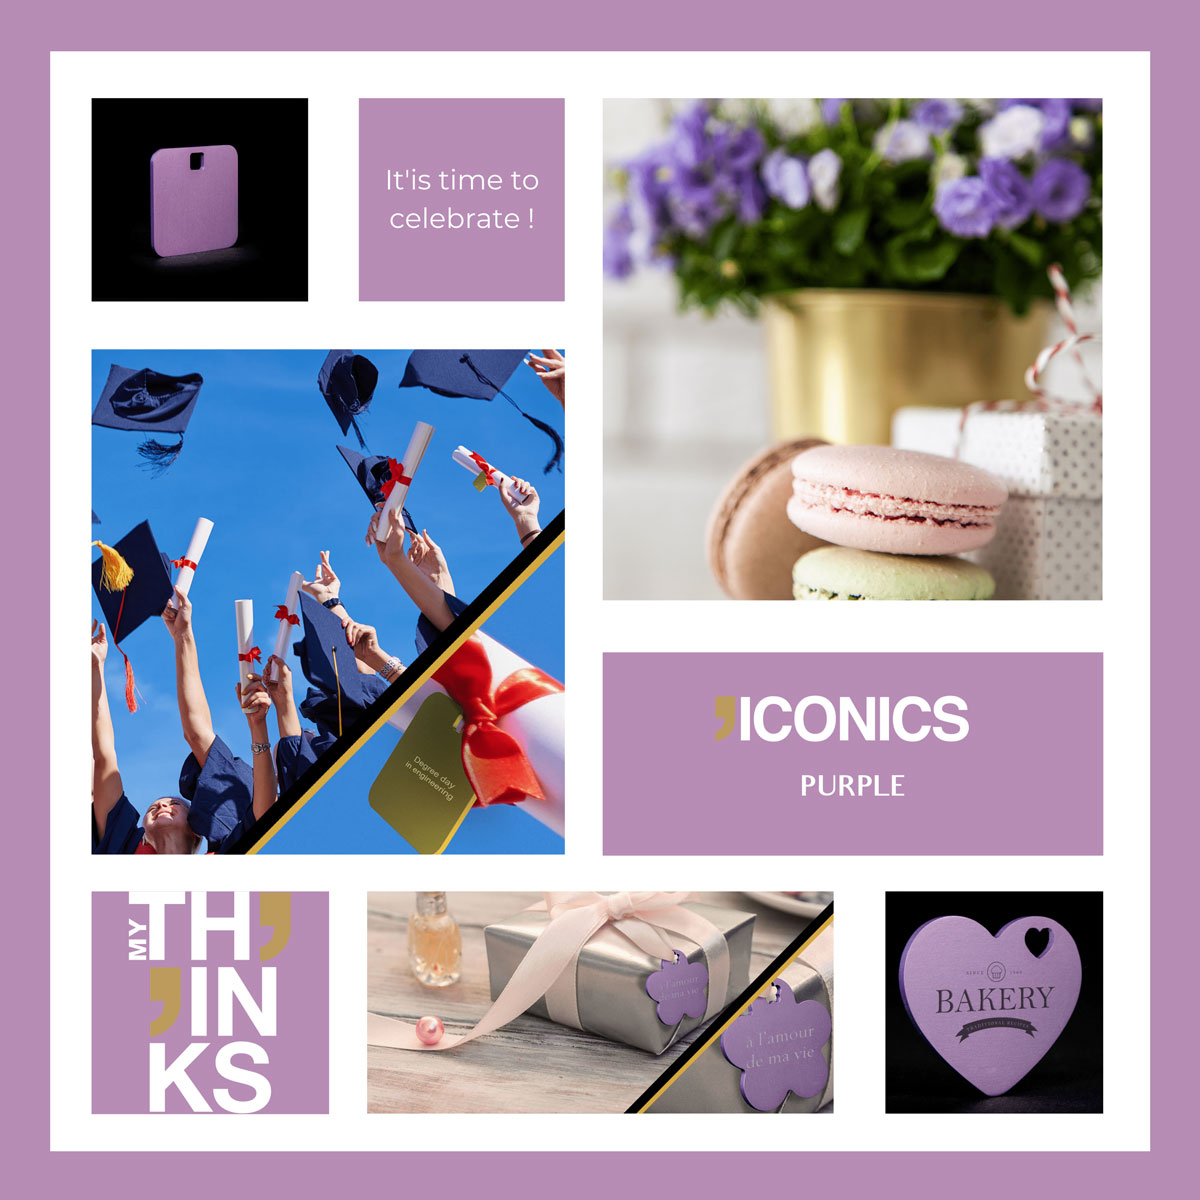 Mood board Iconics collection gifts in purple color tag personalized for the celebration market